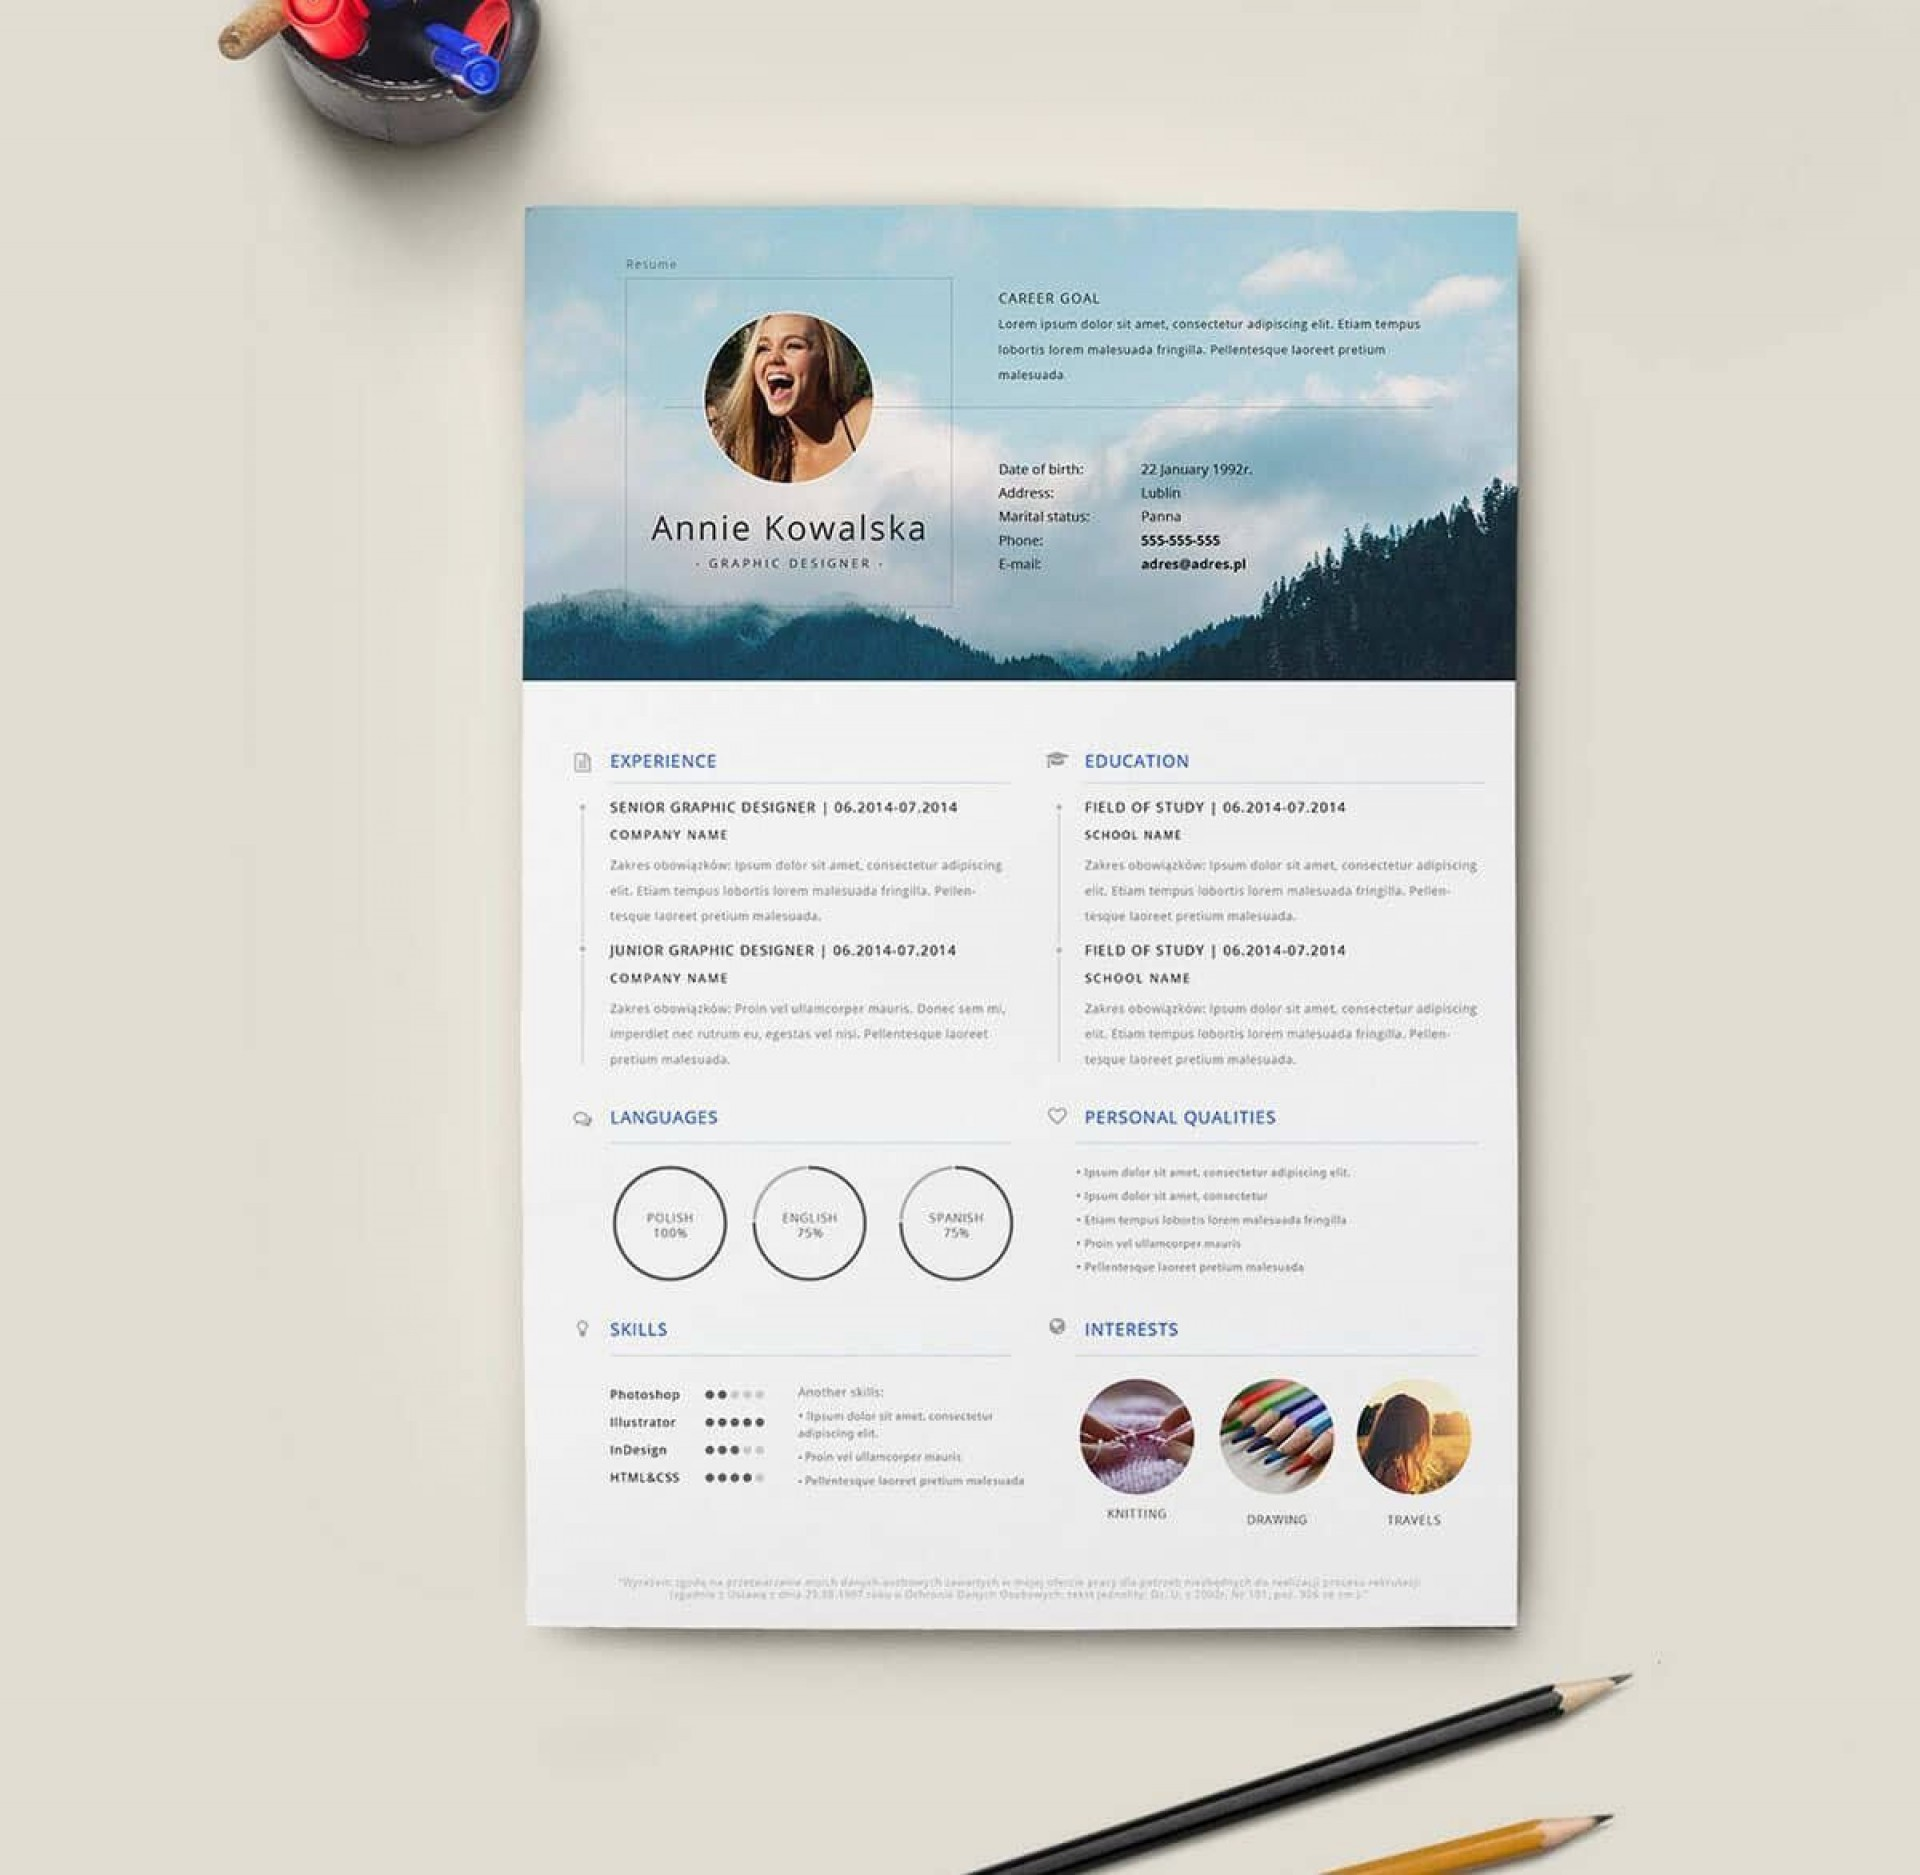 005 Magnificent Creative Resume Template Free Download Idea  For Microsoft Word Fresher Cv Doc1920